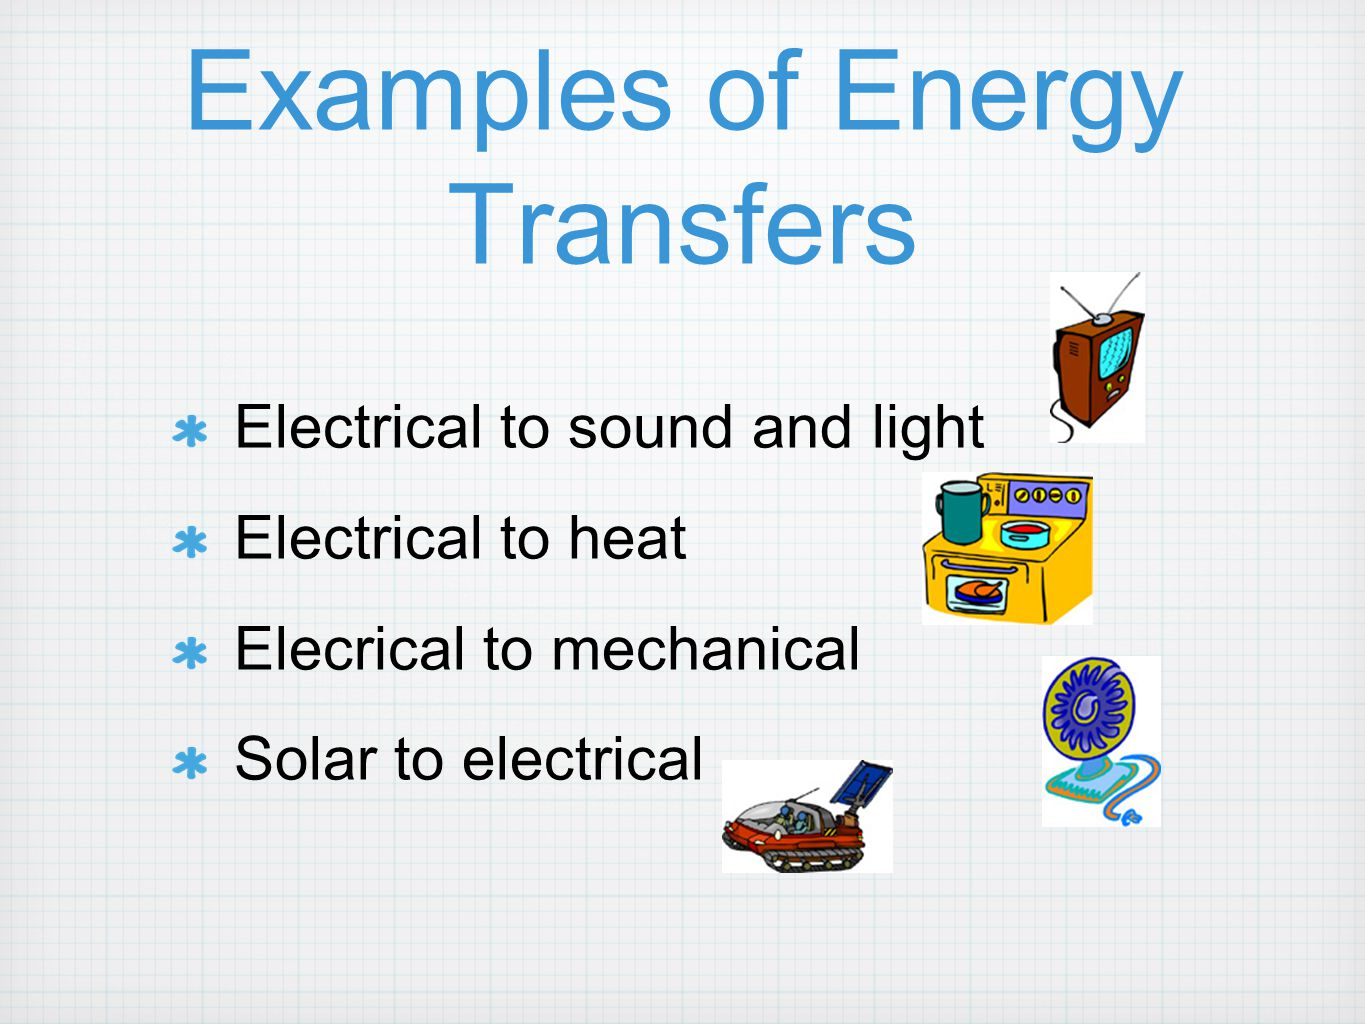 Examples of Energy Transfers